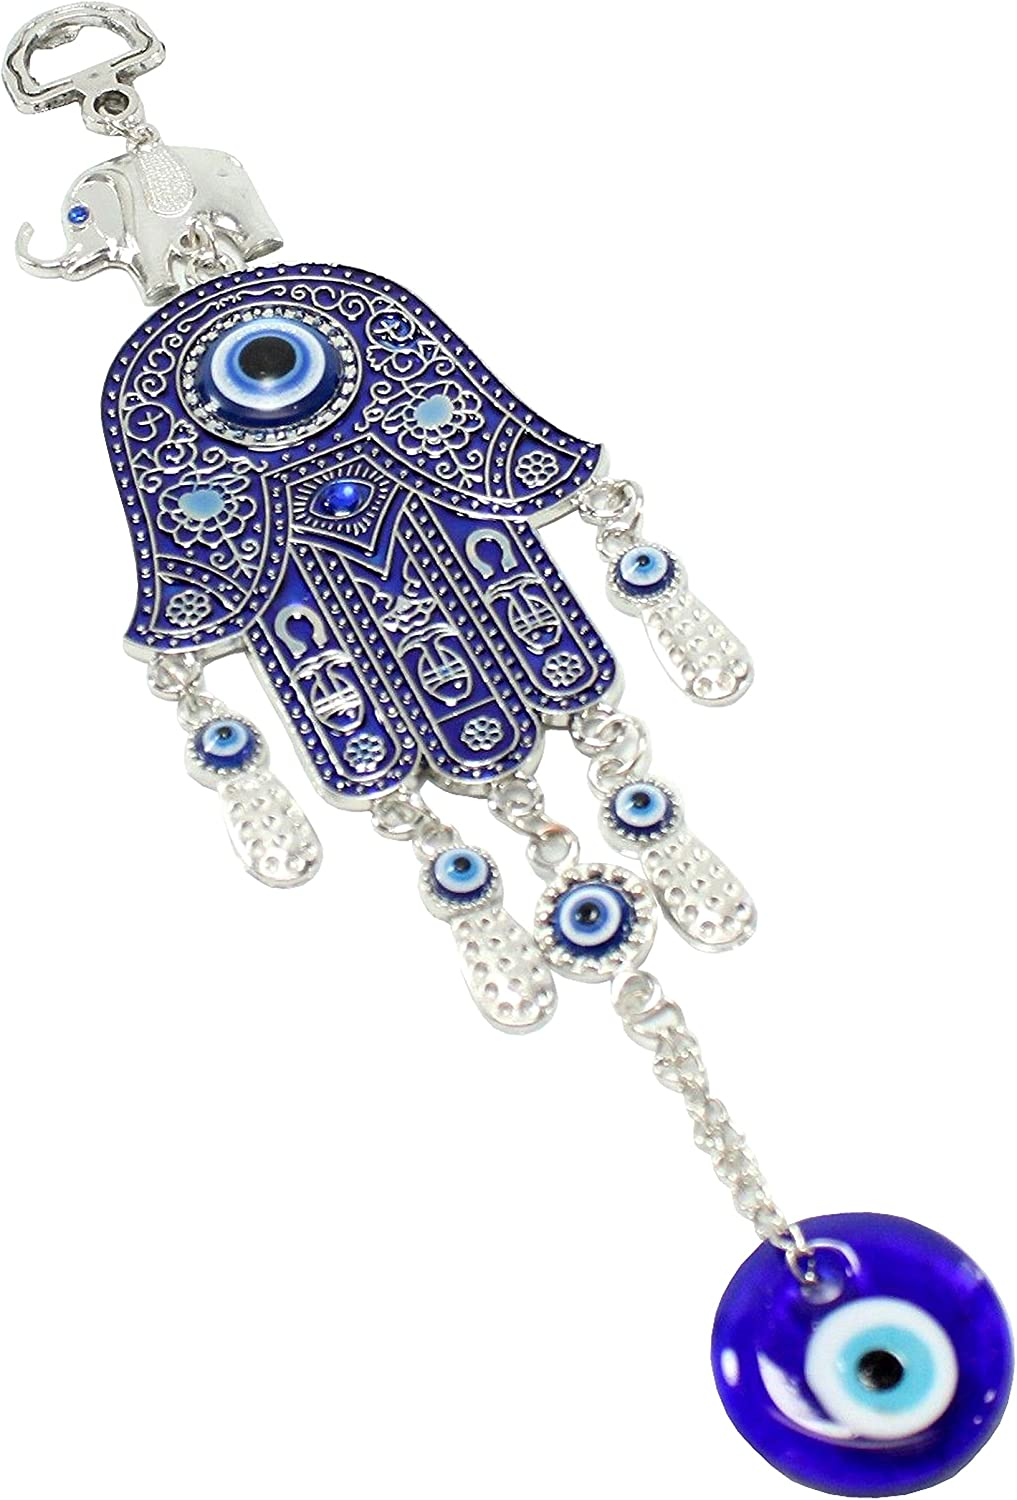 "Turkish Blue Evil Eye (Nazar) 2.5"" Hamsa Hand Elephant Amulet Wall Hanging Home Decor Protection Good Luck Blessing Housewarming Birthday Gift US Seller"